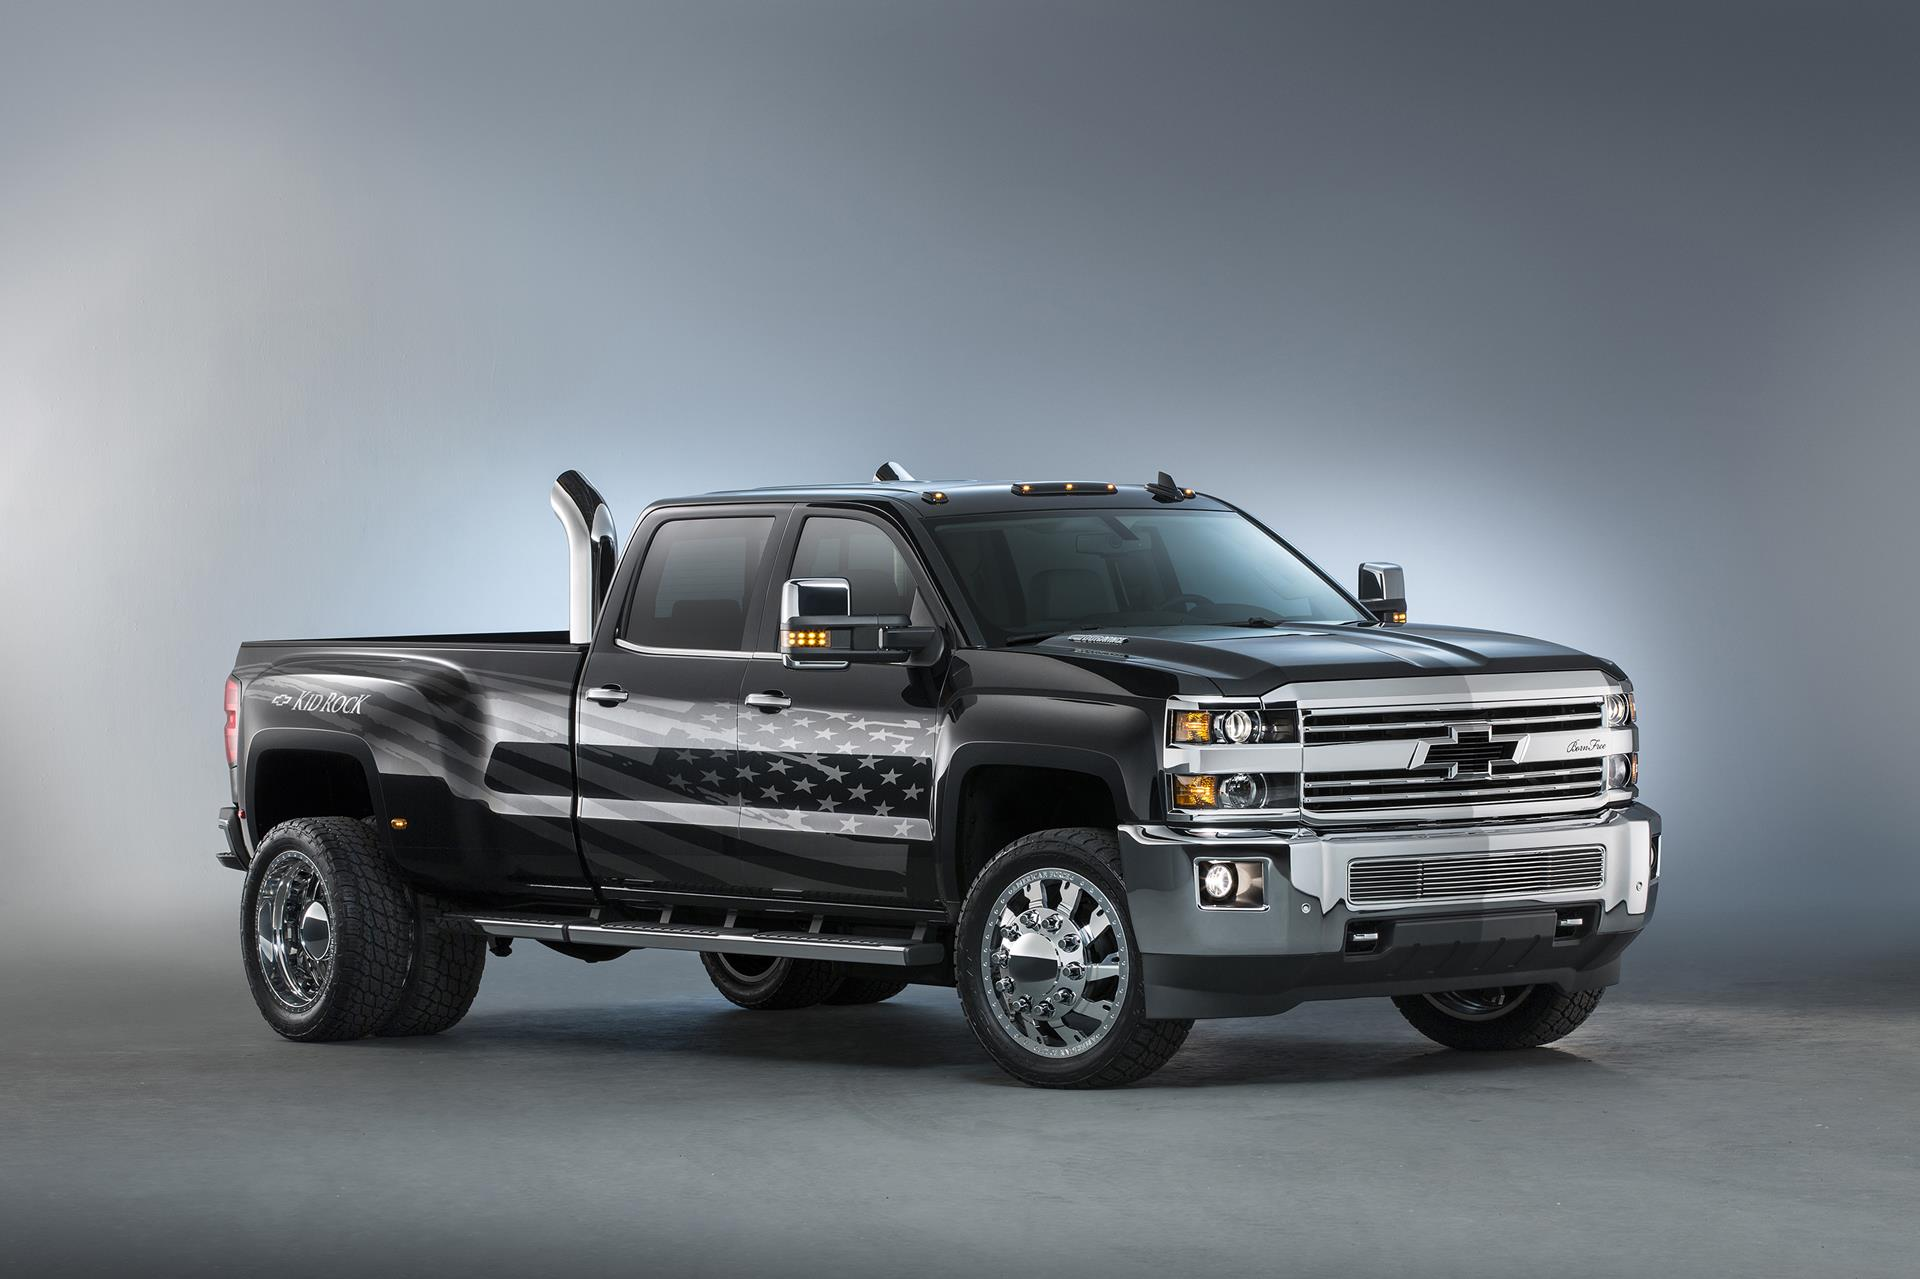 2015 chevrolet silverado 3500hd kid rock concept. Black Bedroom Furniture Sets. Home Design Ideas